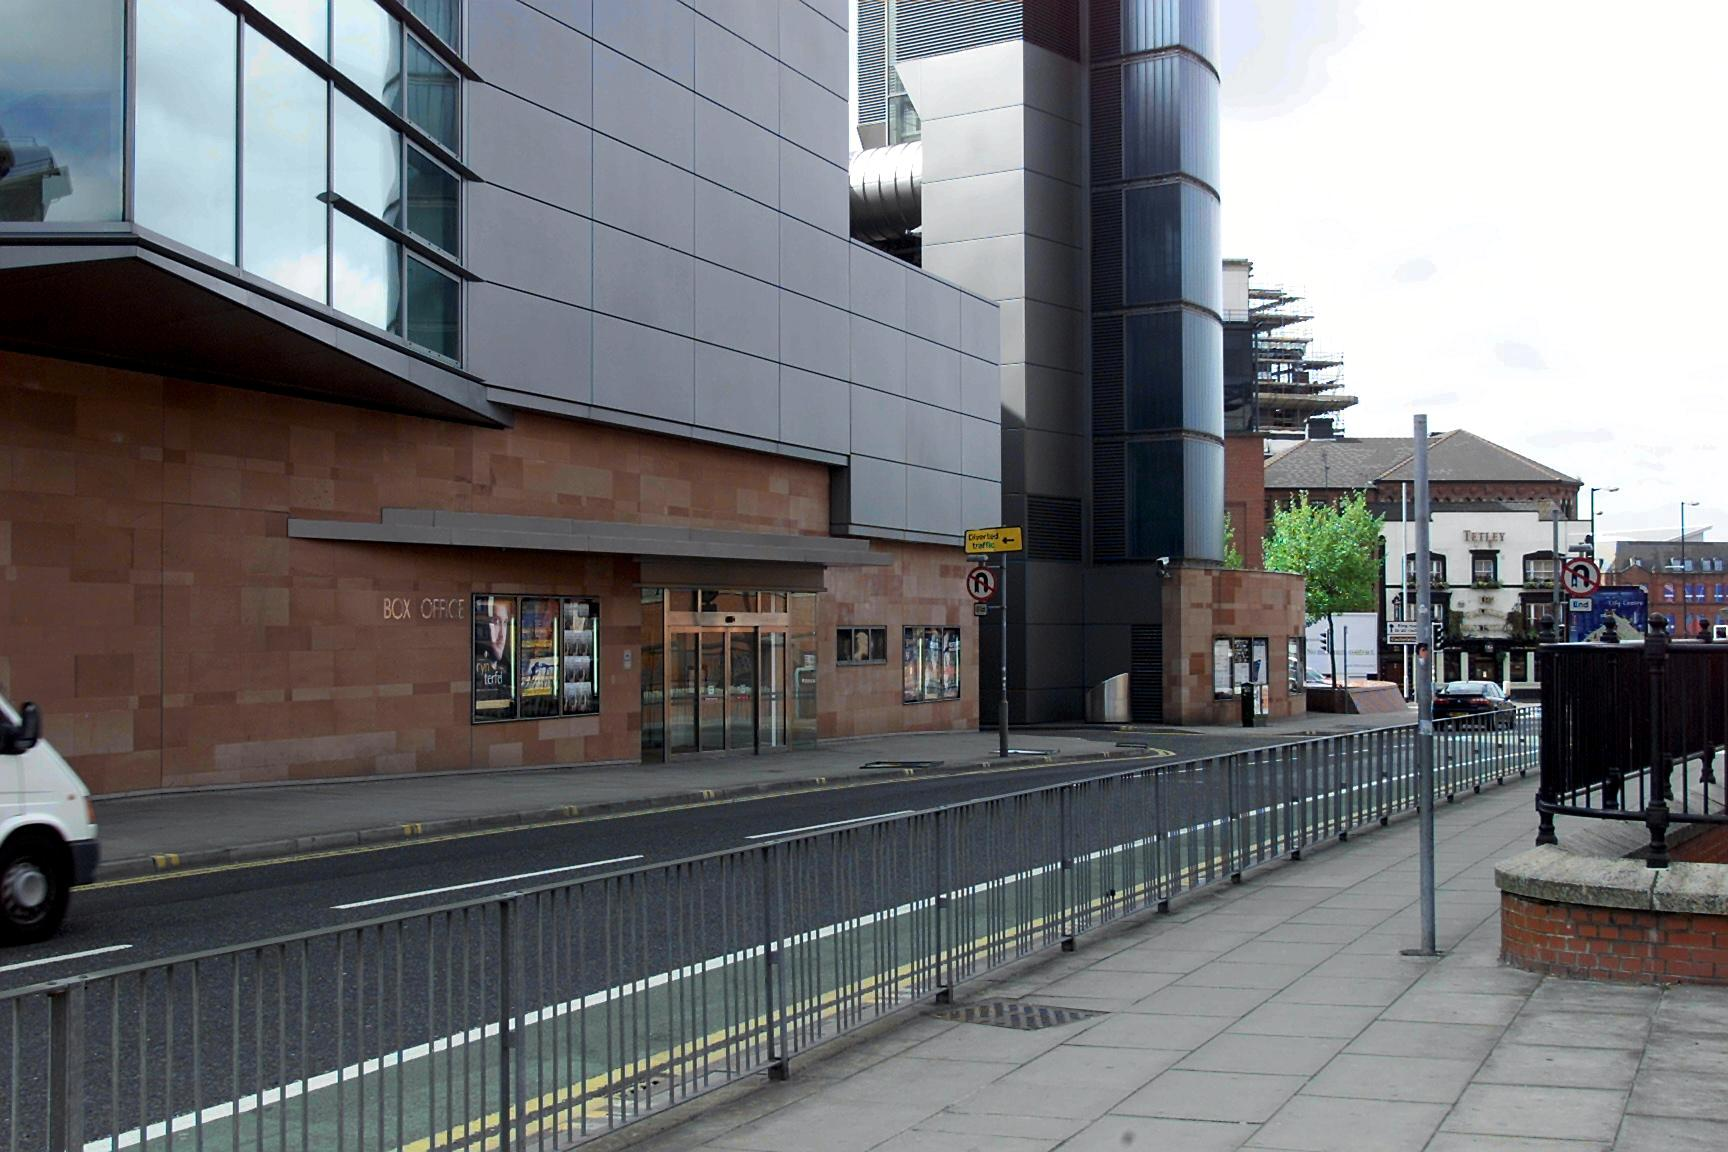 Lower Mosley Street, Manchester - Now